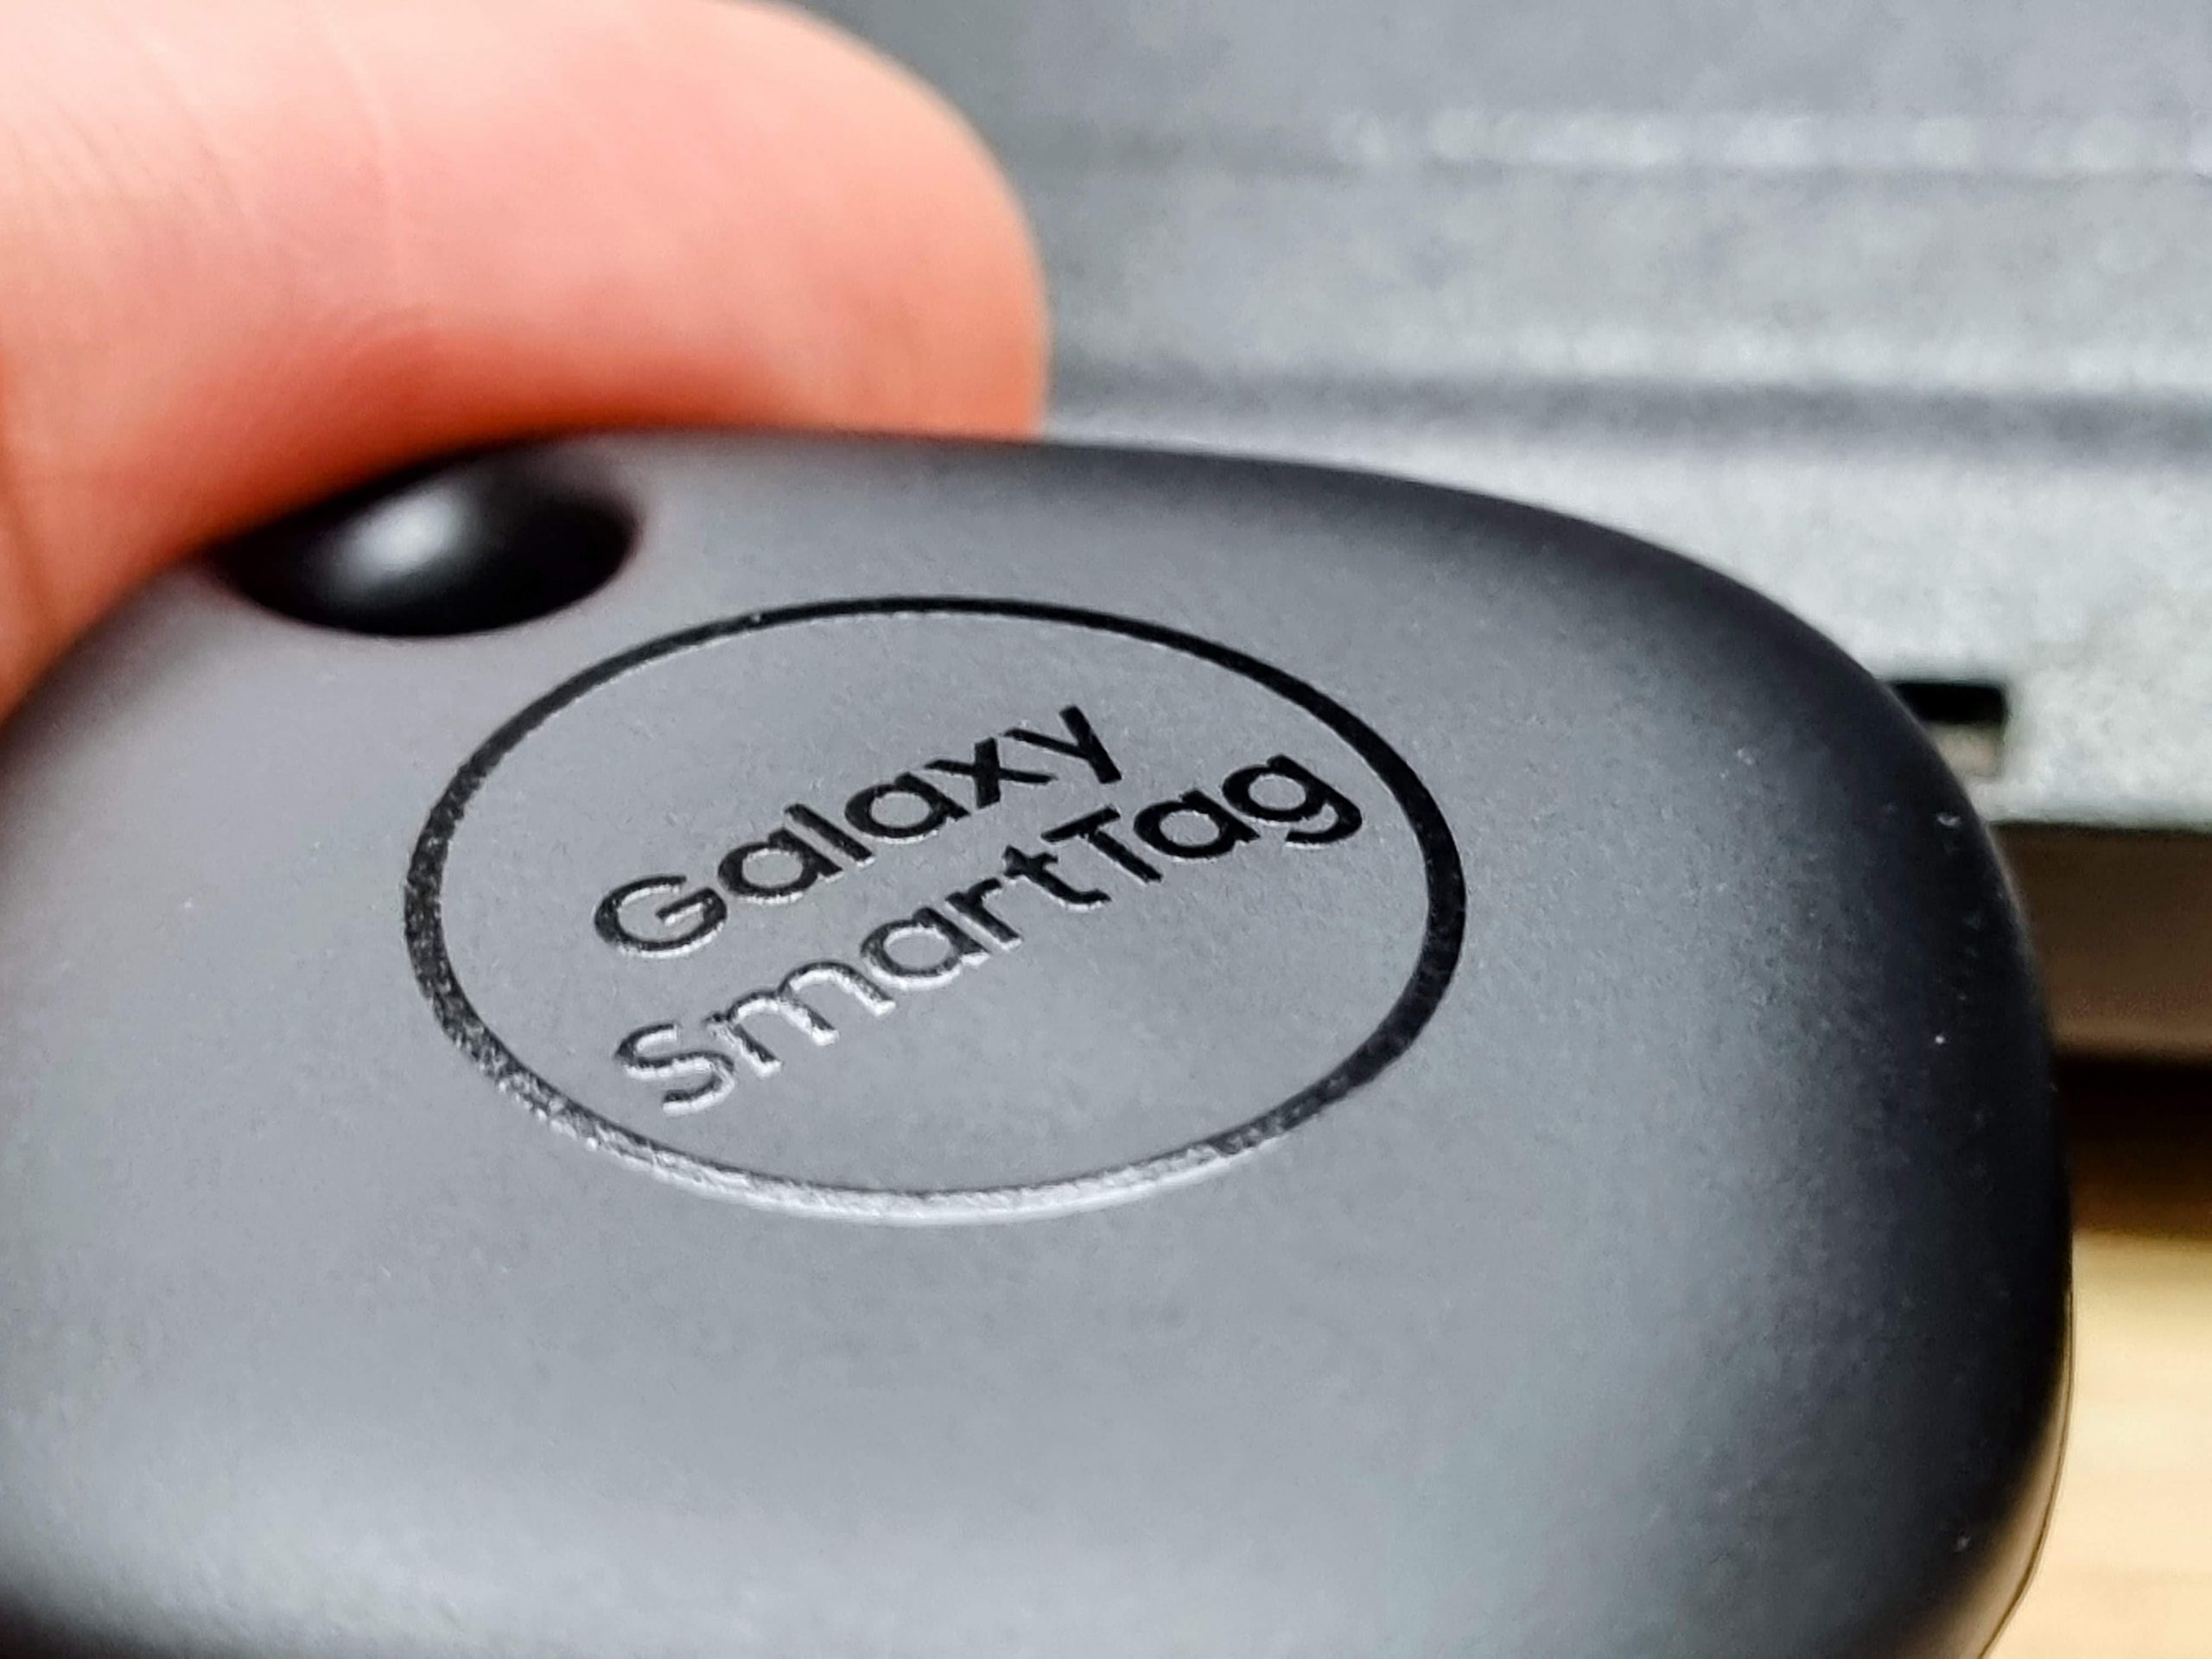 Samsung Galaxy SmartTag Review - Things Don't Get Lost Anymore